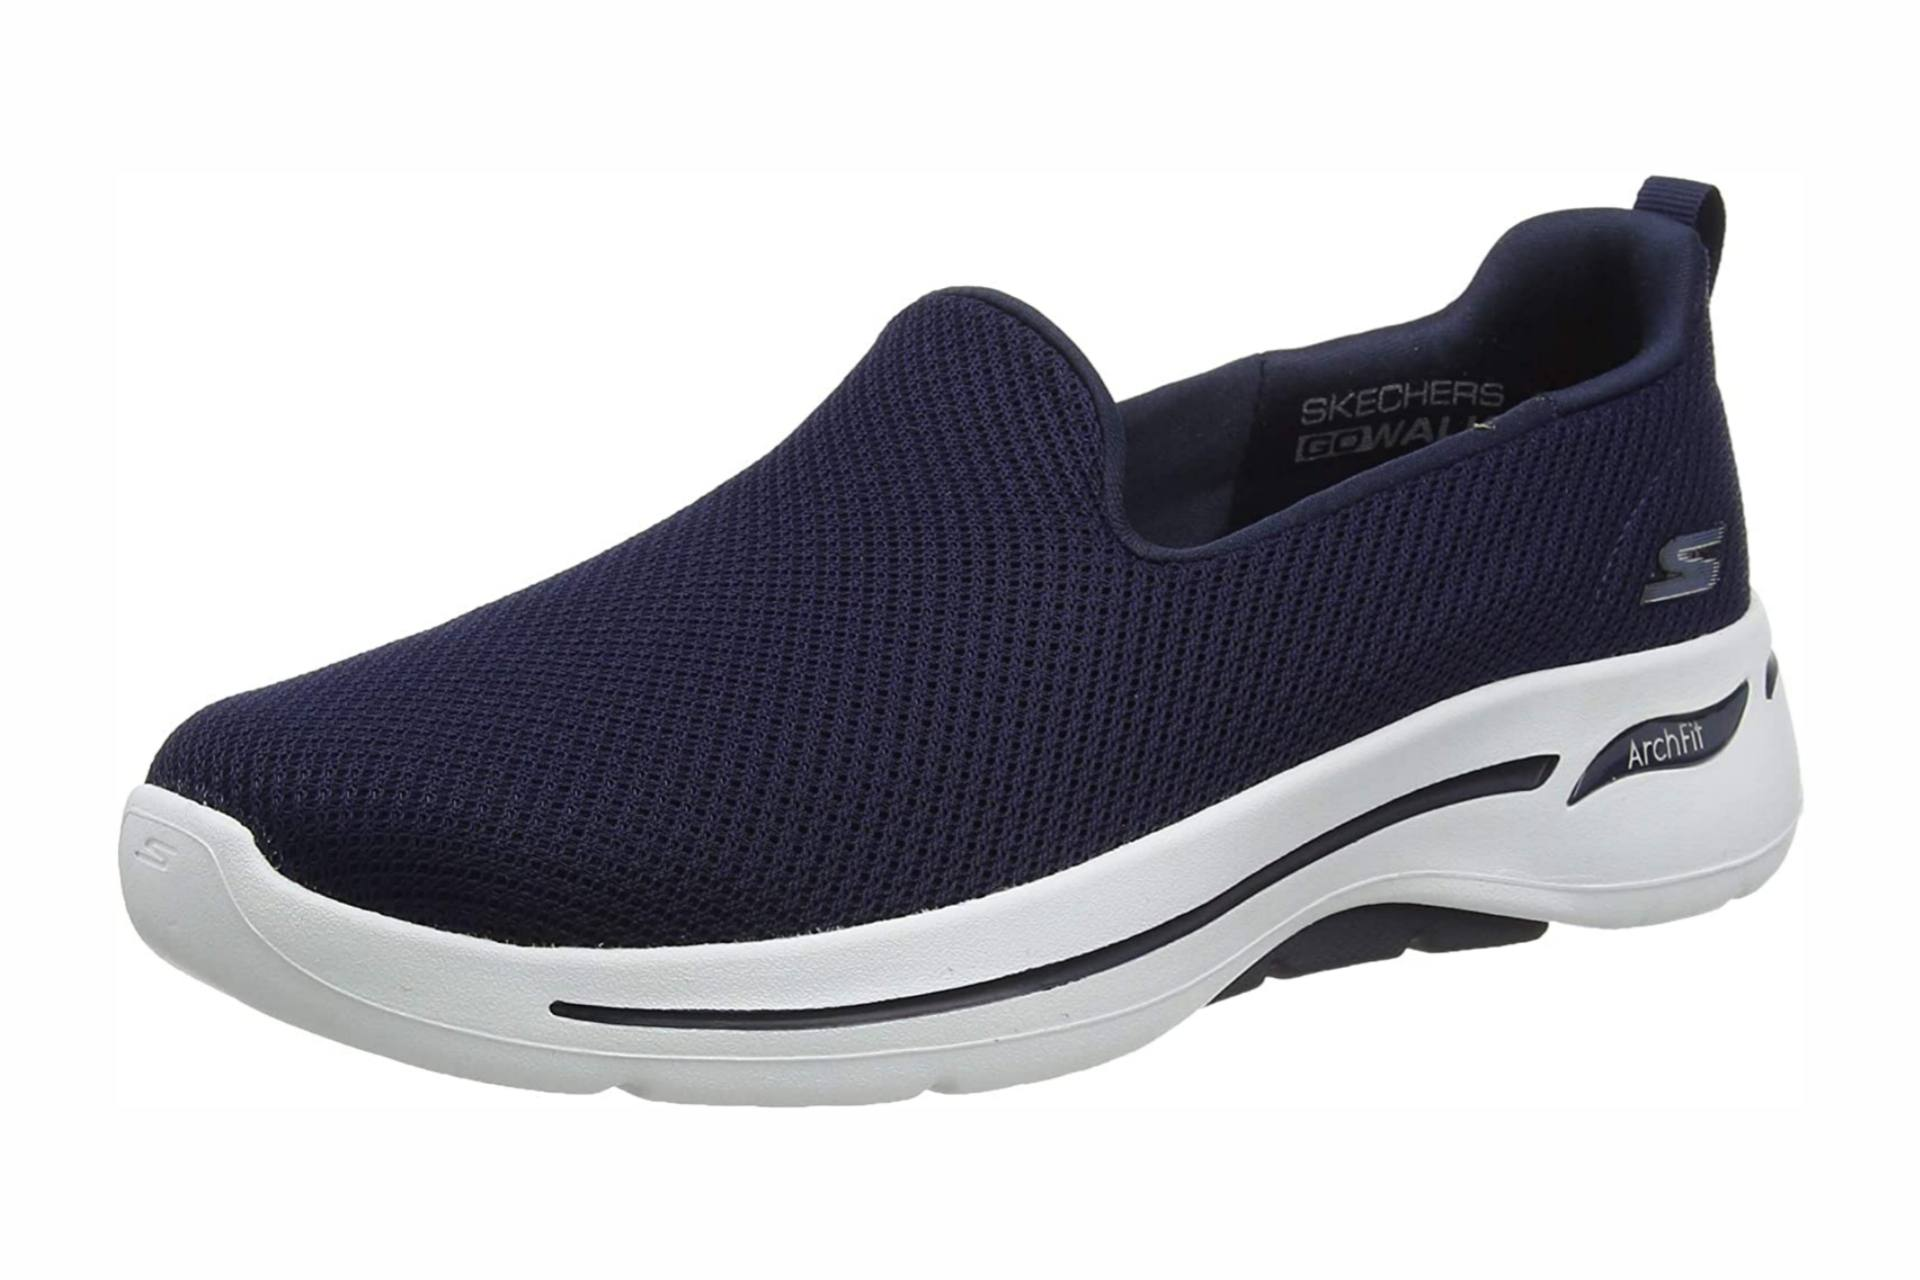 Best skechers for arch support